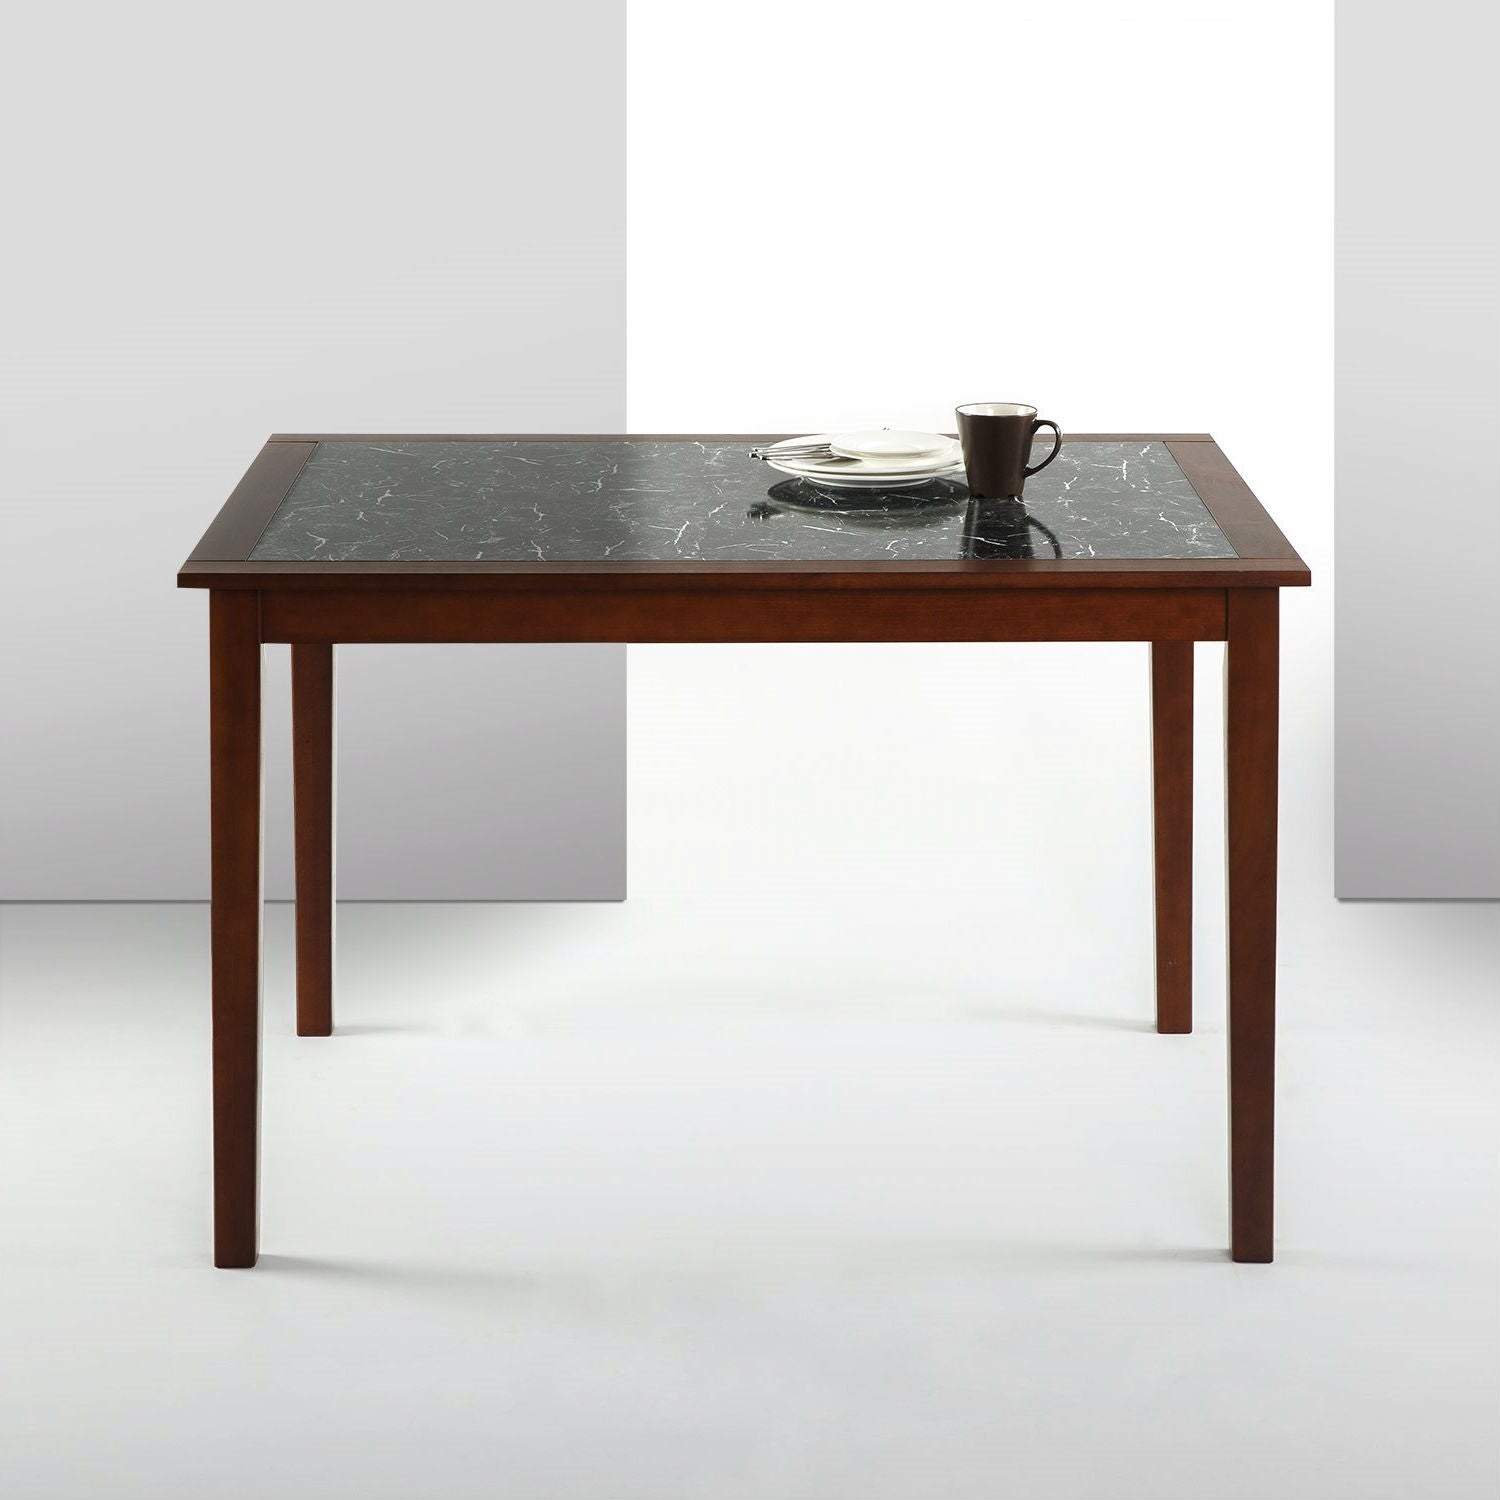 Rectangular 48 x 36 inch Brown Wood Dining Table with Faux Marble Top